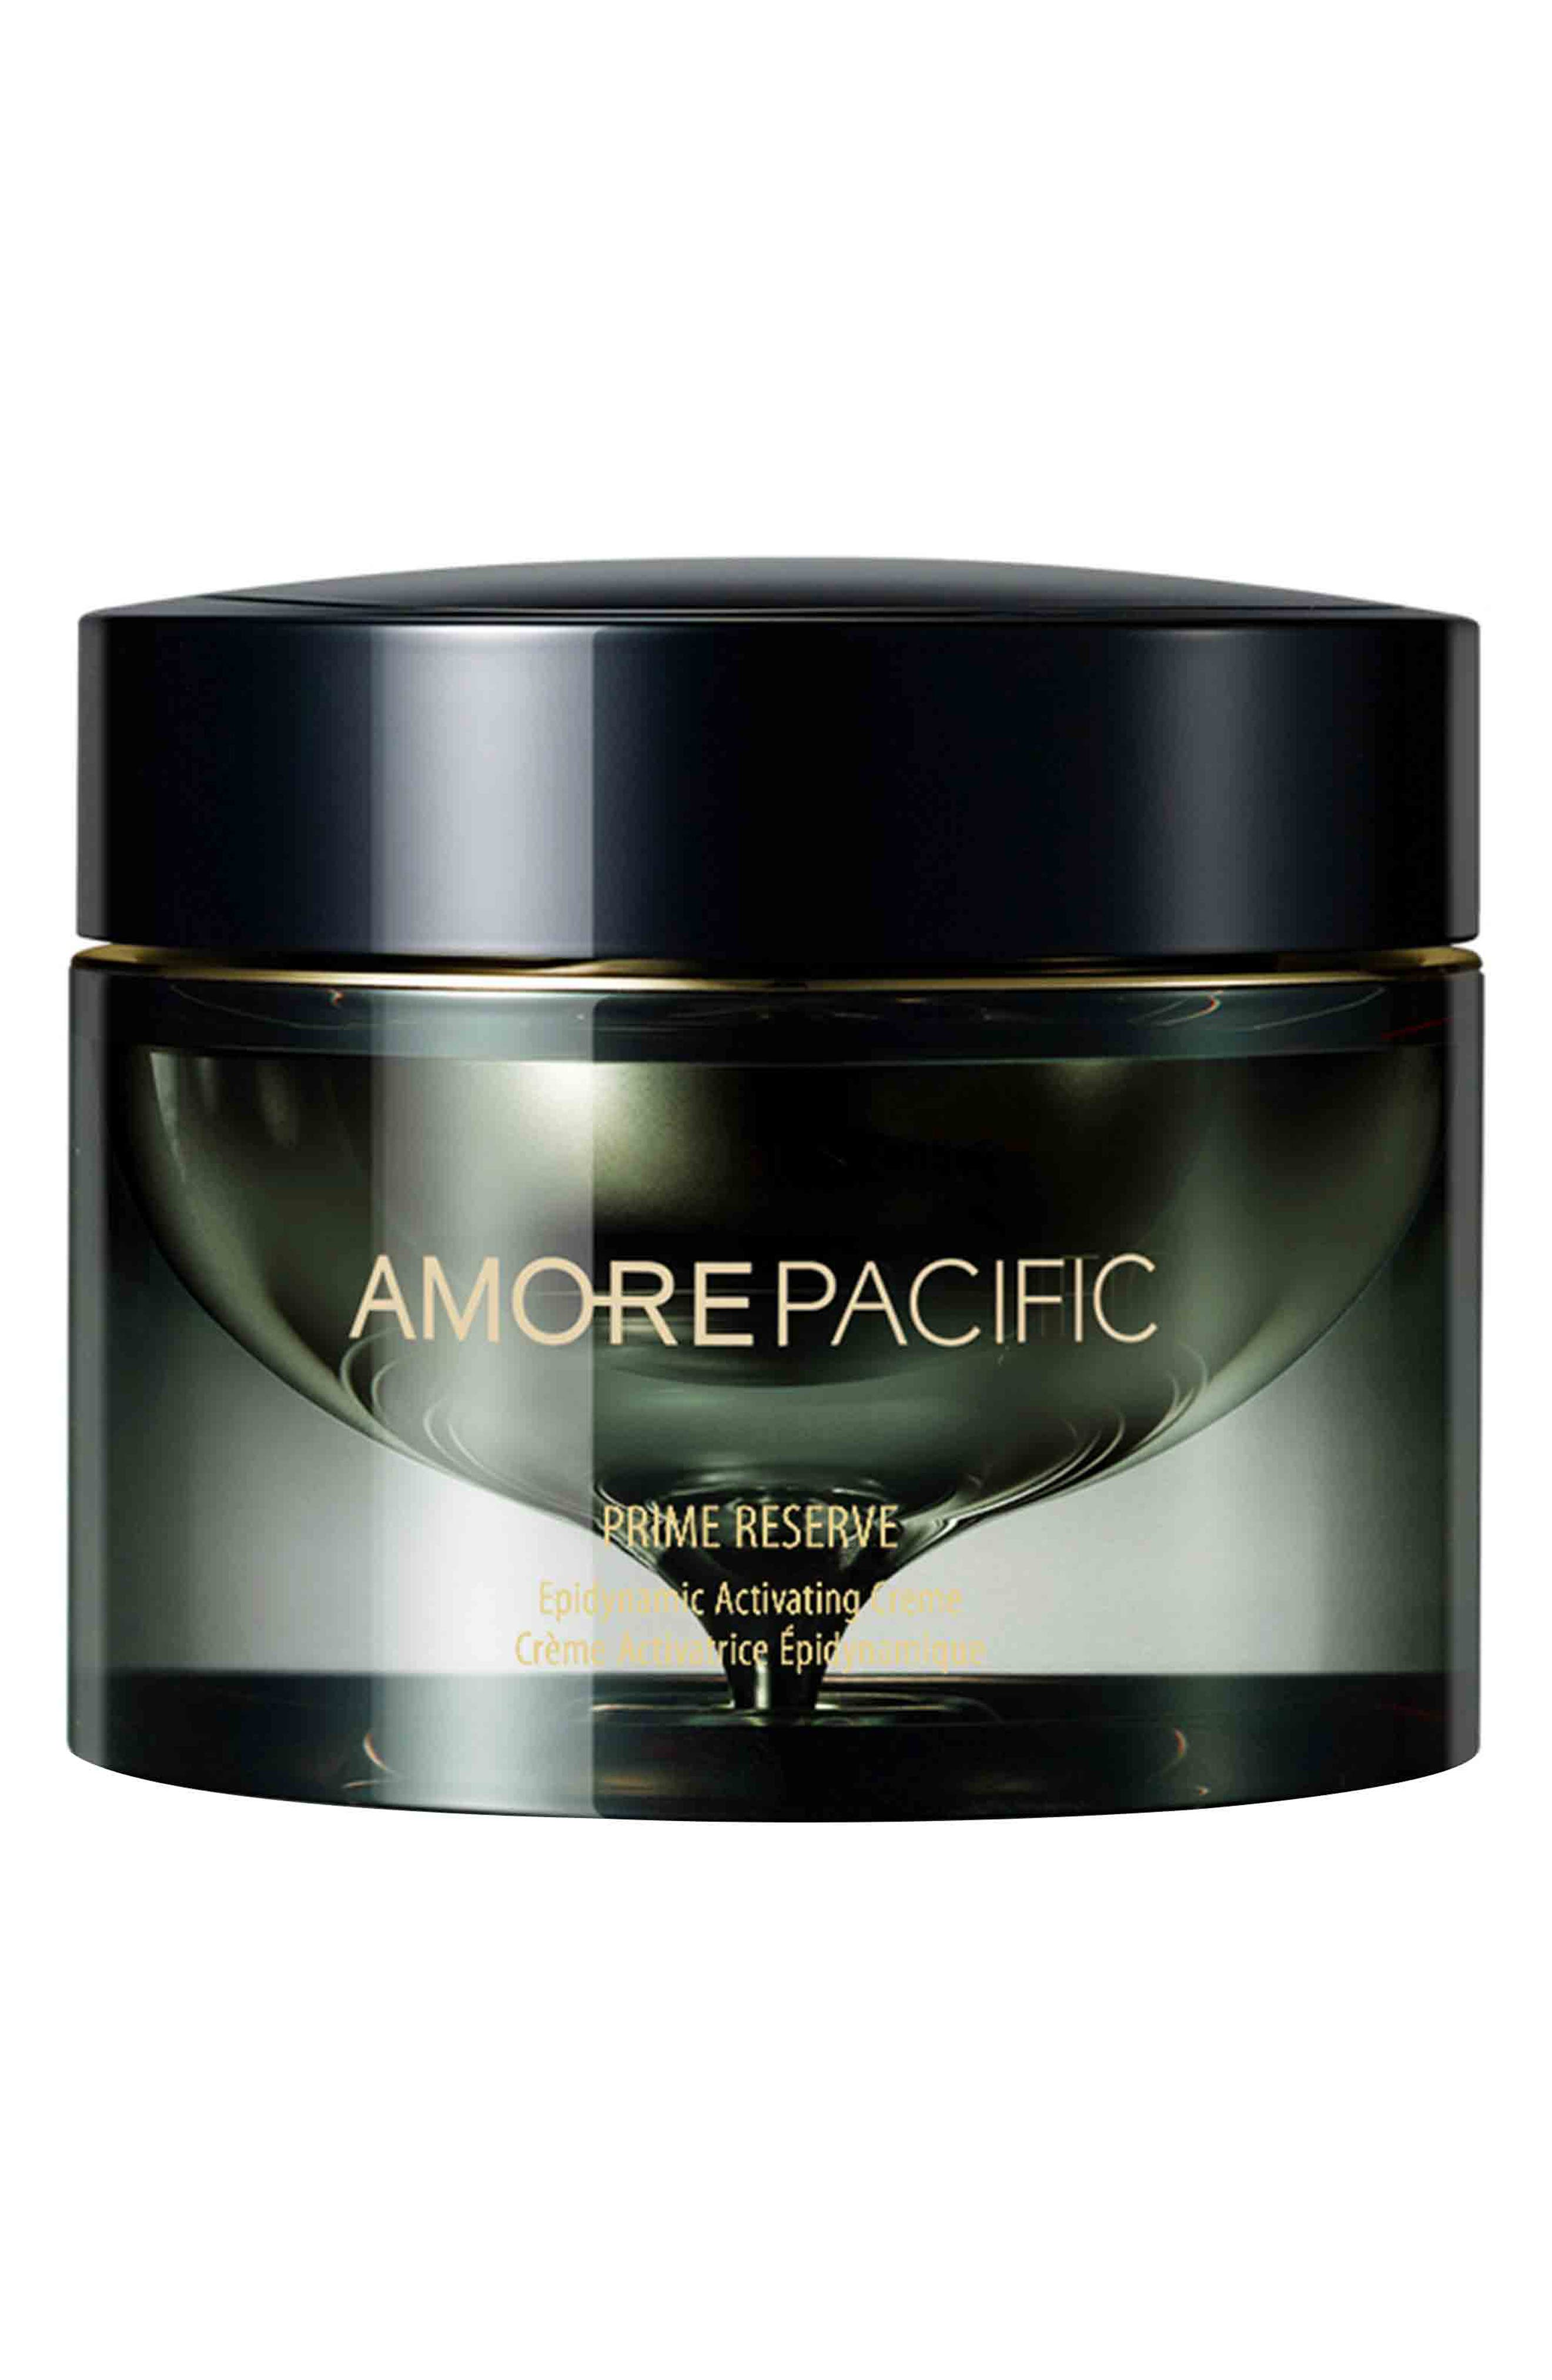 AMOREPACIFIC 'Prime Reserve' Epidynamic Activating Creme, Main, color, 000